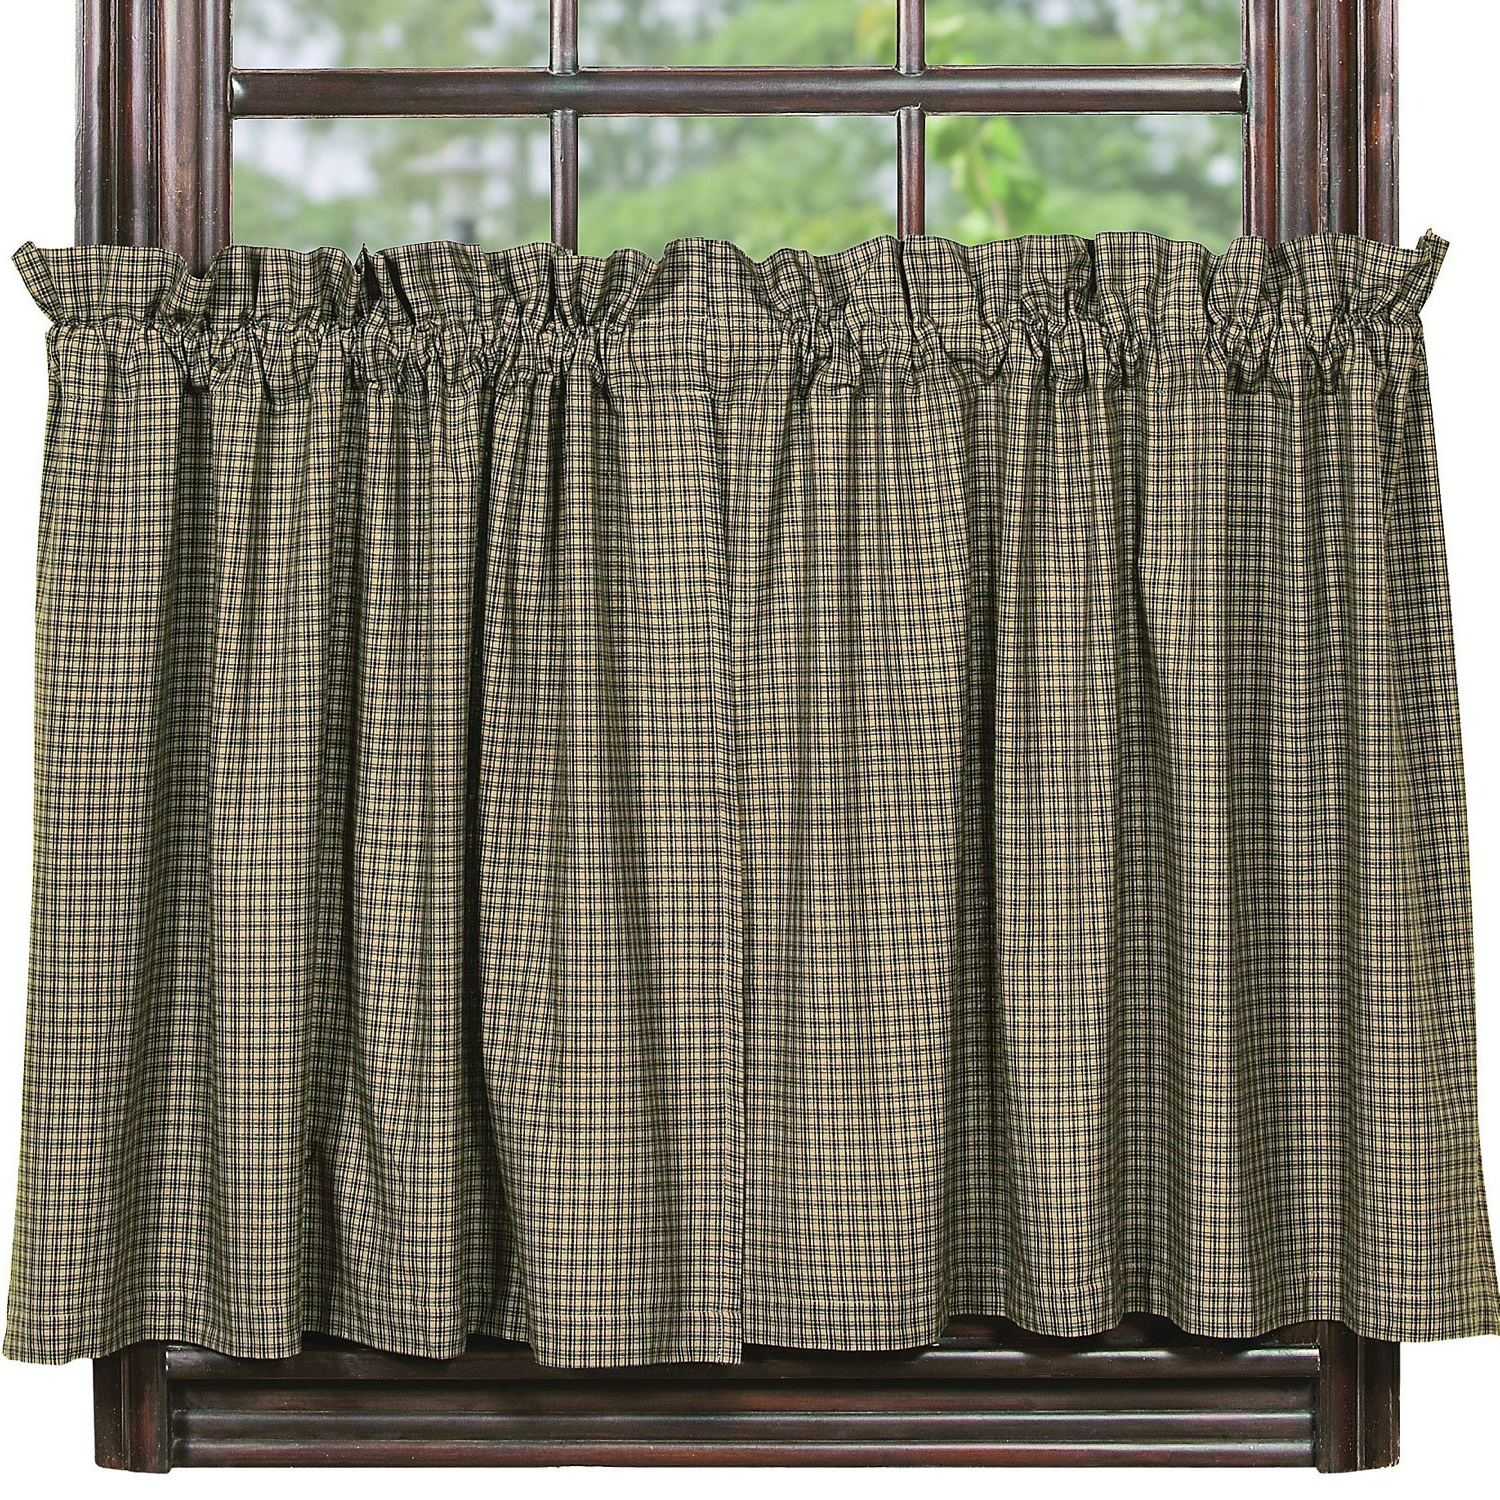 "Latest Cotton Blend Classic Checkered Decorative Window Curtains Regarding Amazon: Ihf Home Decor 36"" Tier Curtain Vintage Star (View 10 of 20)"